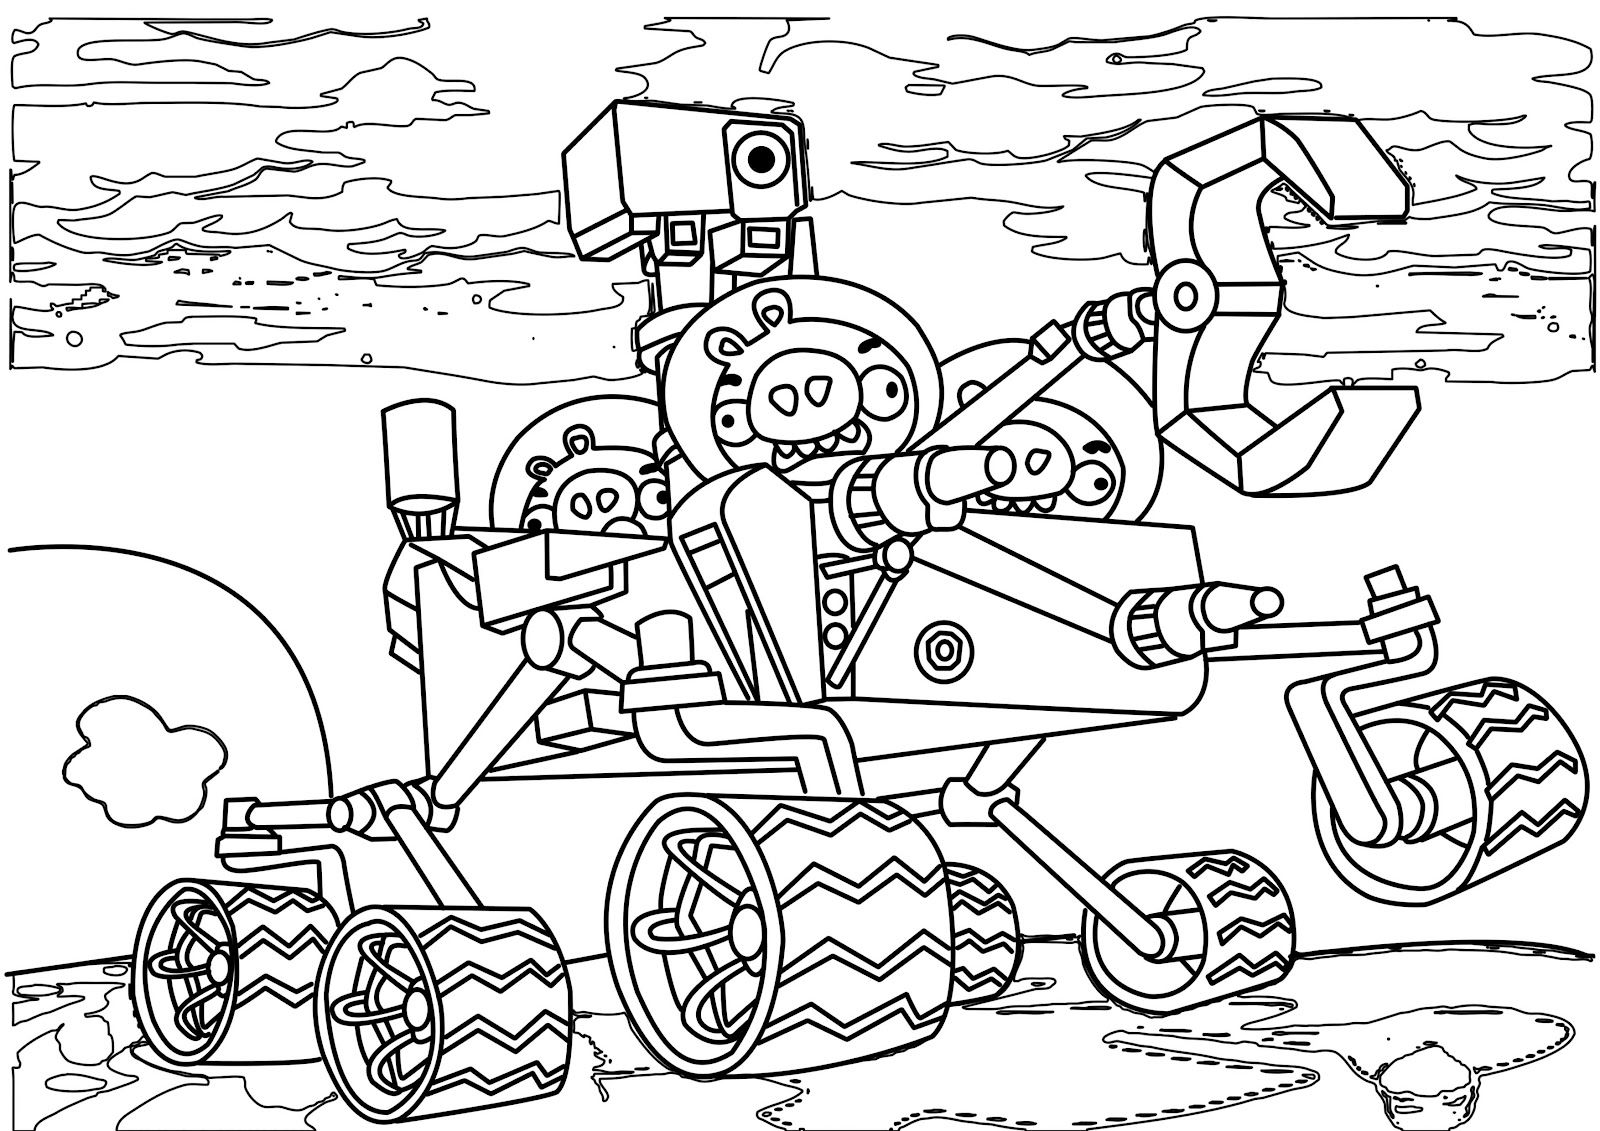 Piggies Space Coloring Page